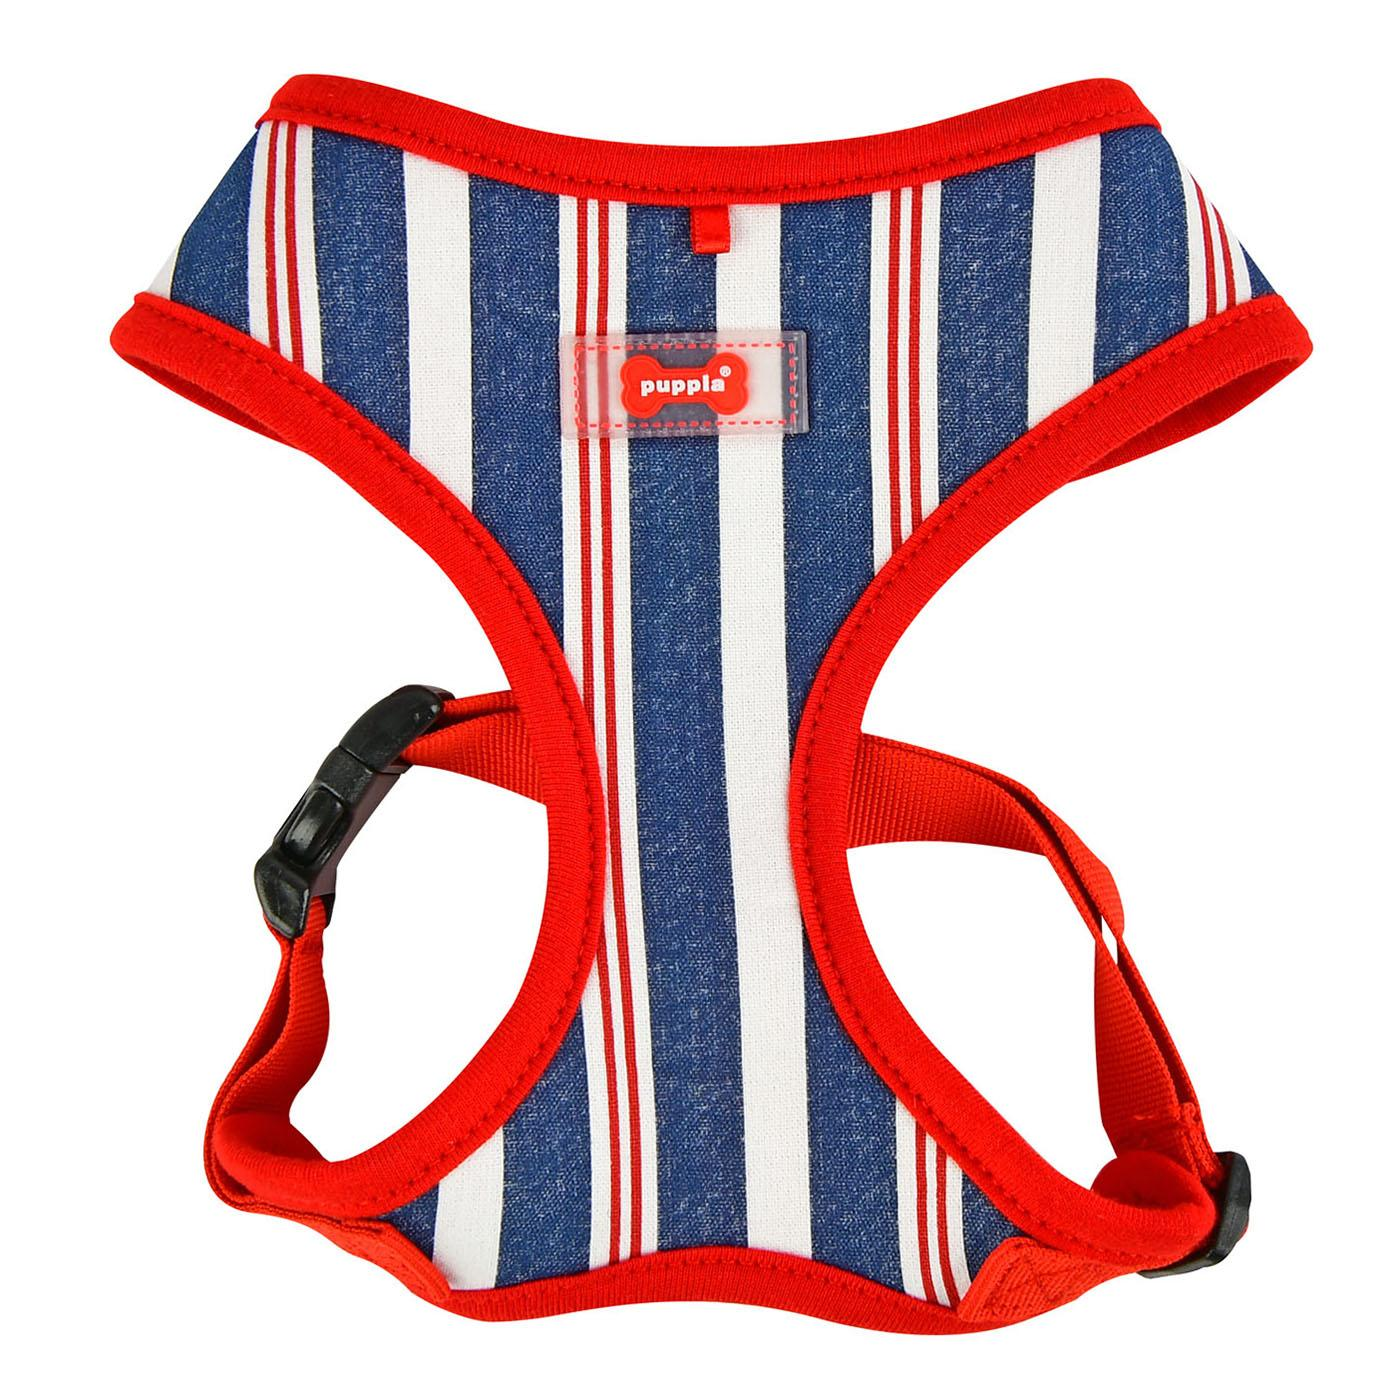 Zorion Striped Dog Harness by Puppia - Red